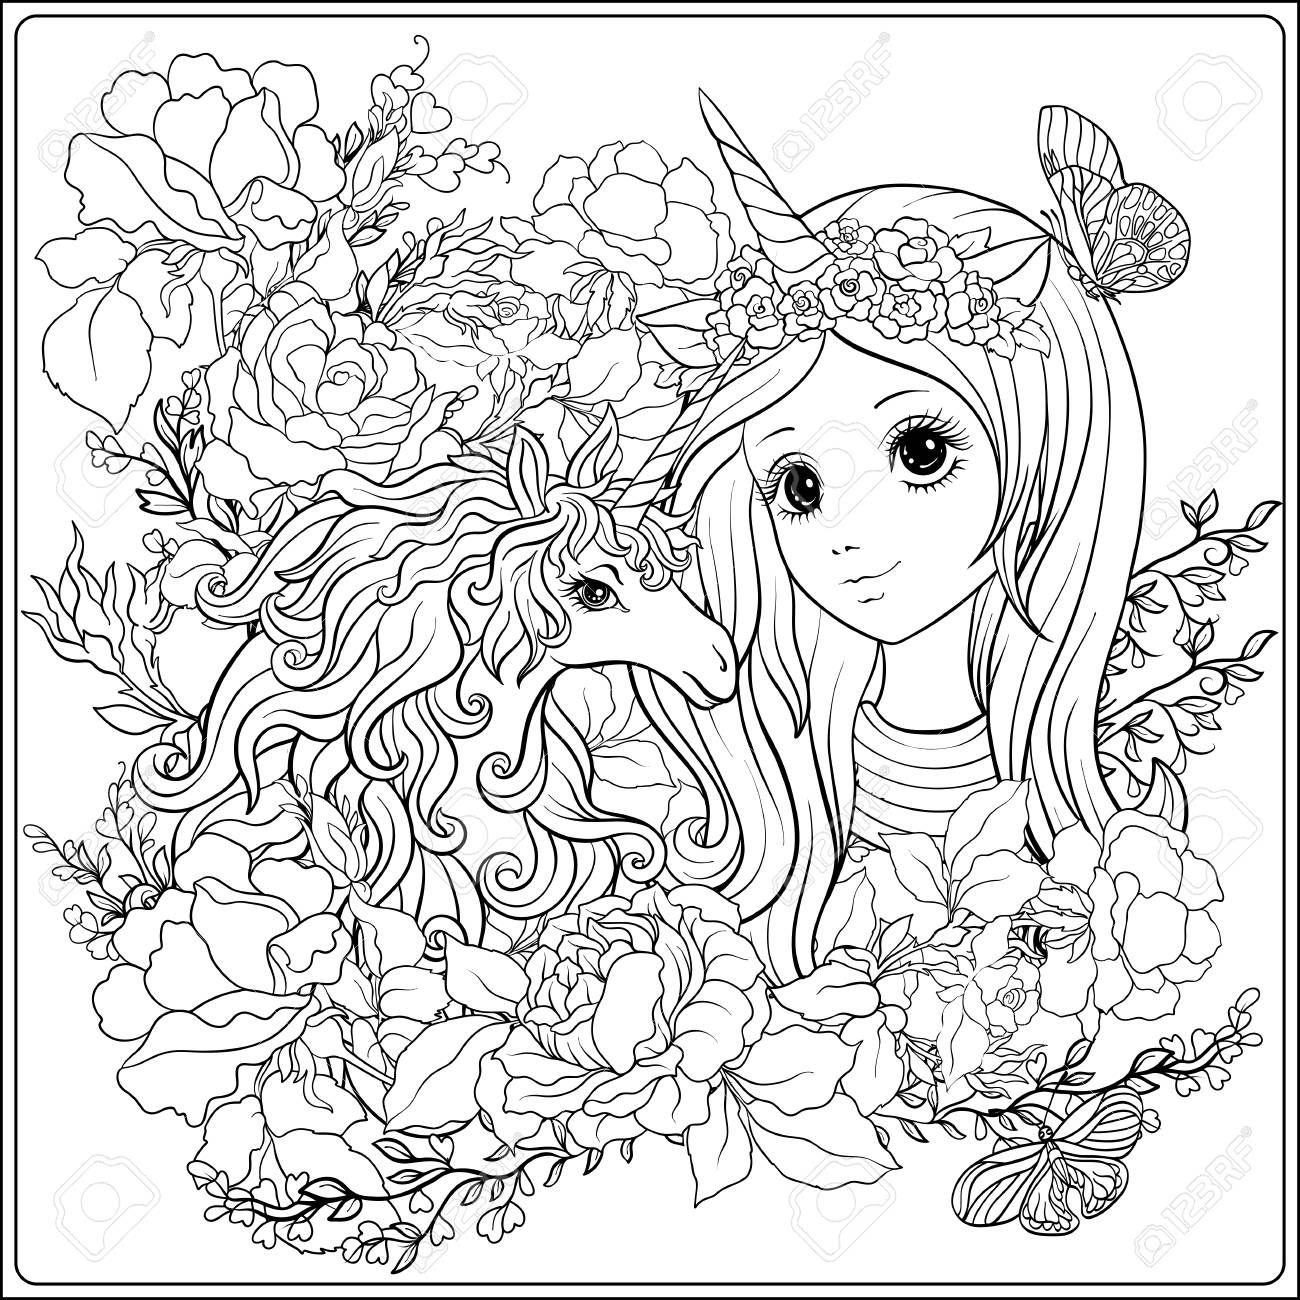 Coloring Unicorn Girl Coloring pages, Adult coloring